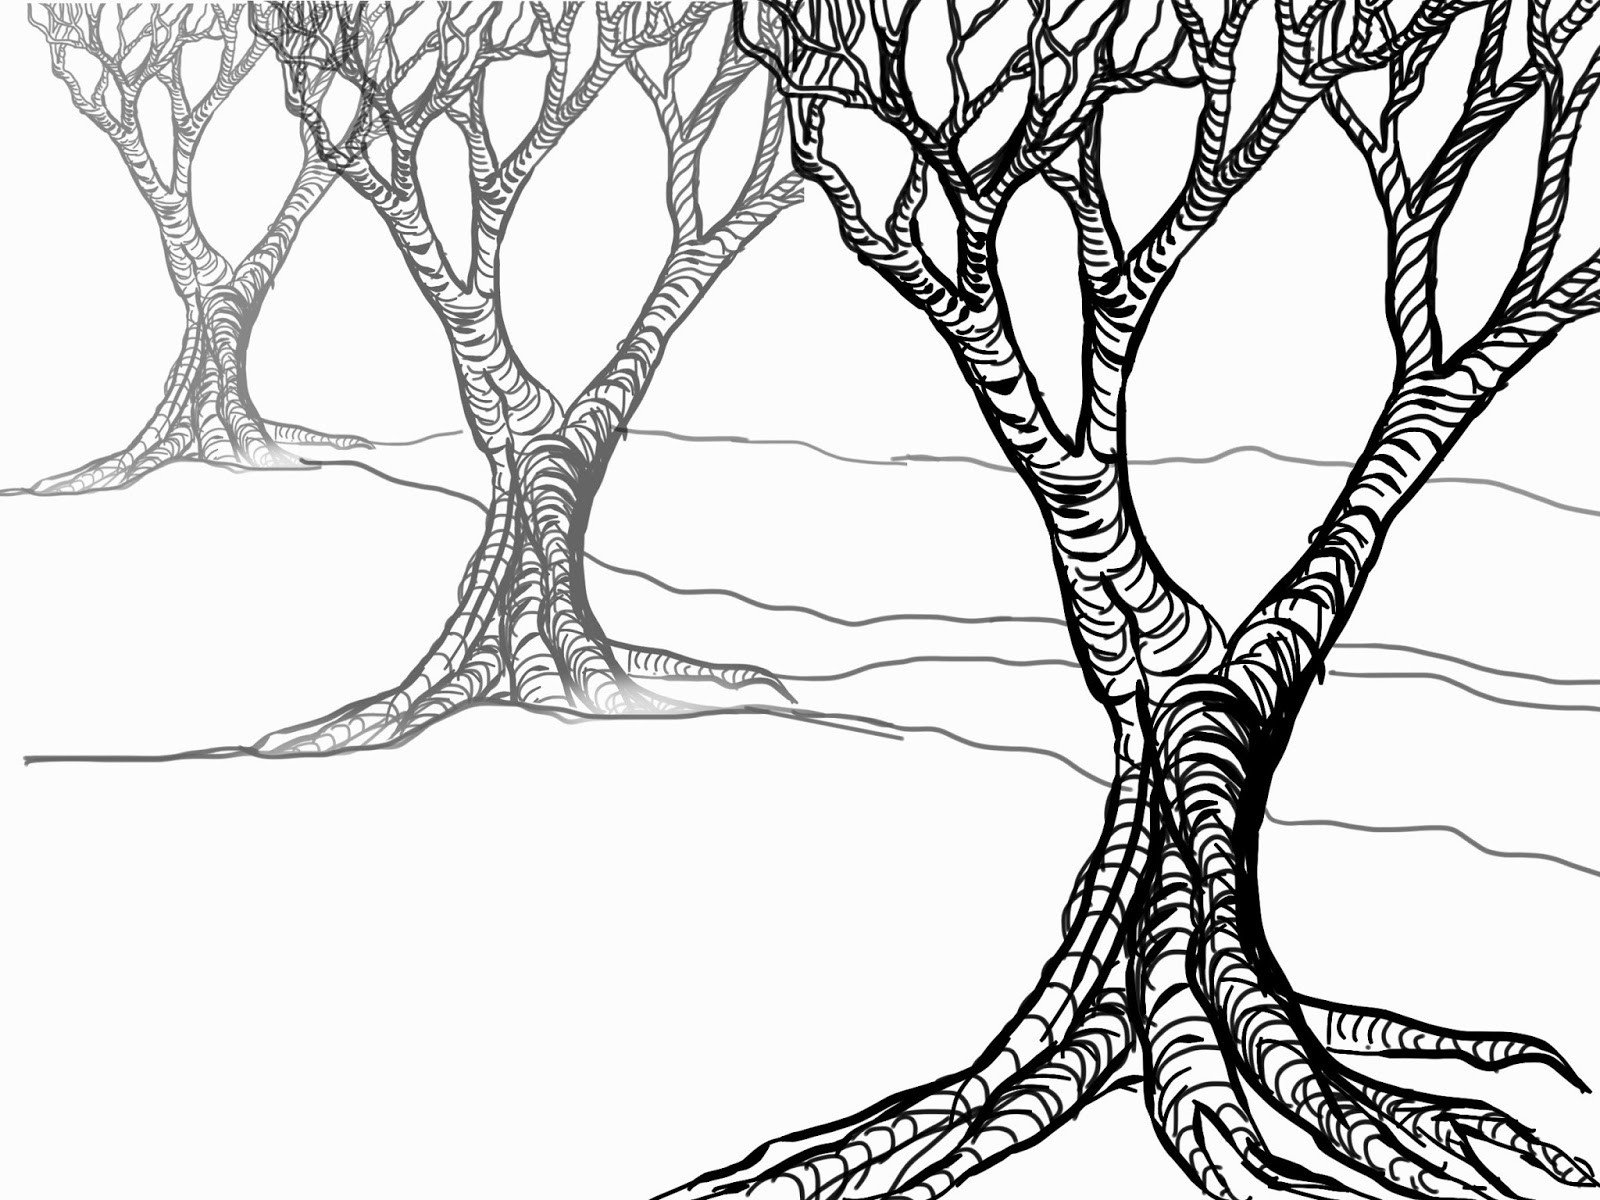 1600x1200 Tree Coloring Pages With No Leaves Elegant The Helpful Art Teacher